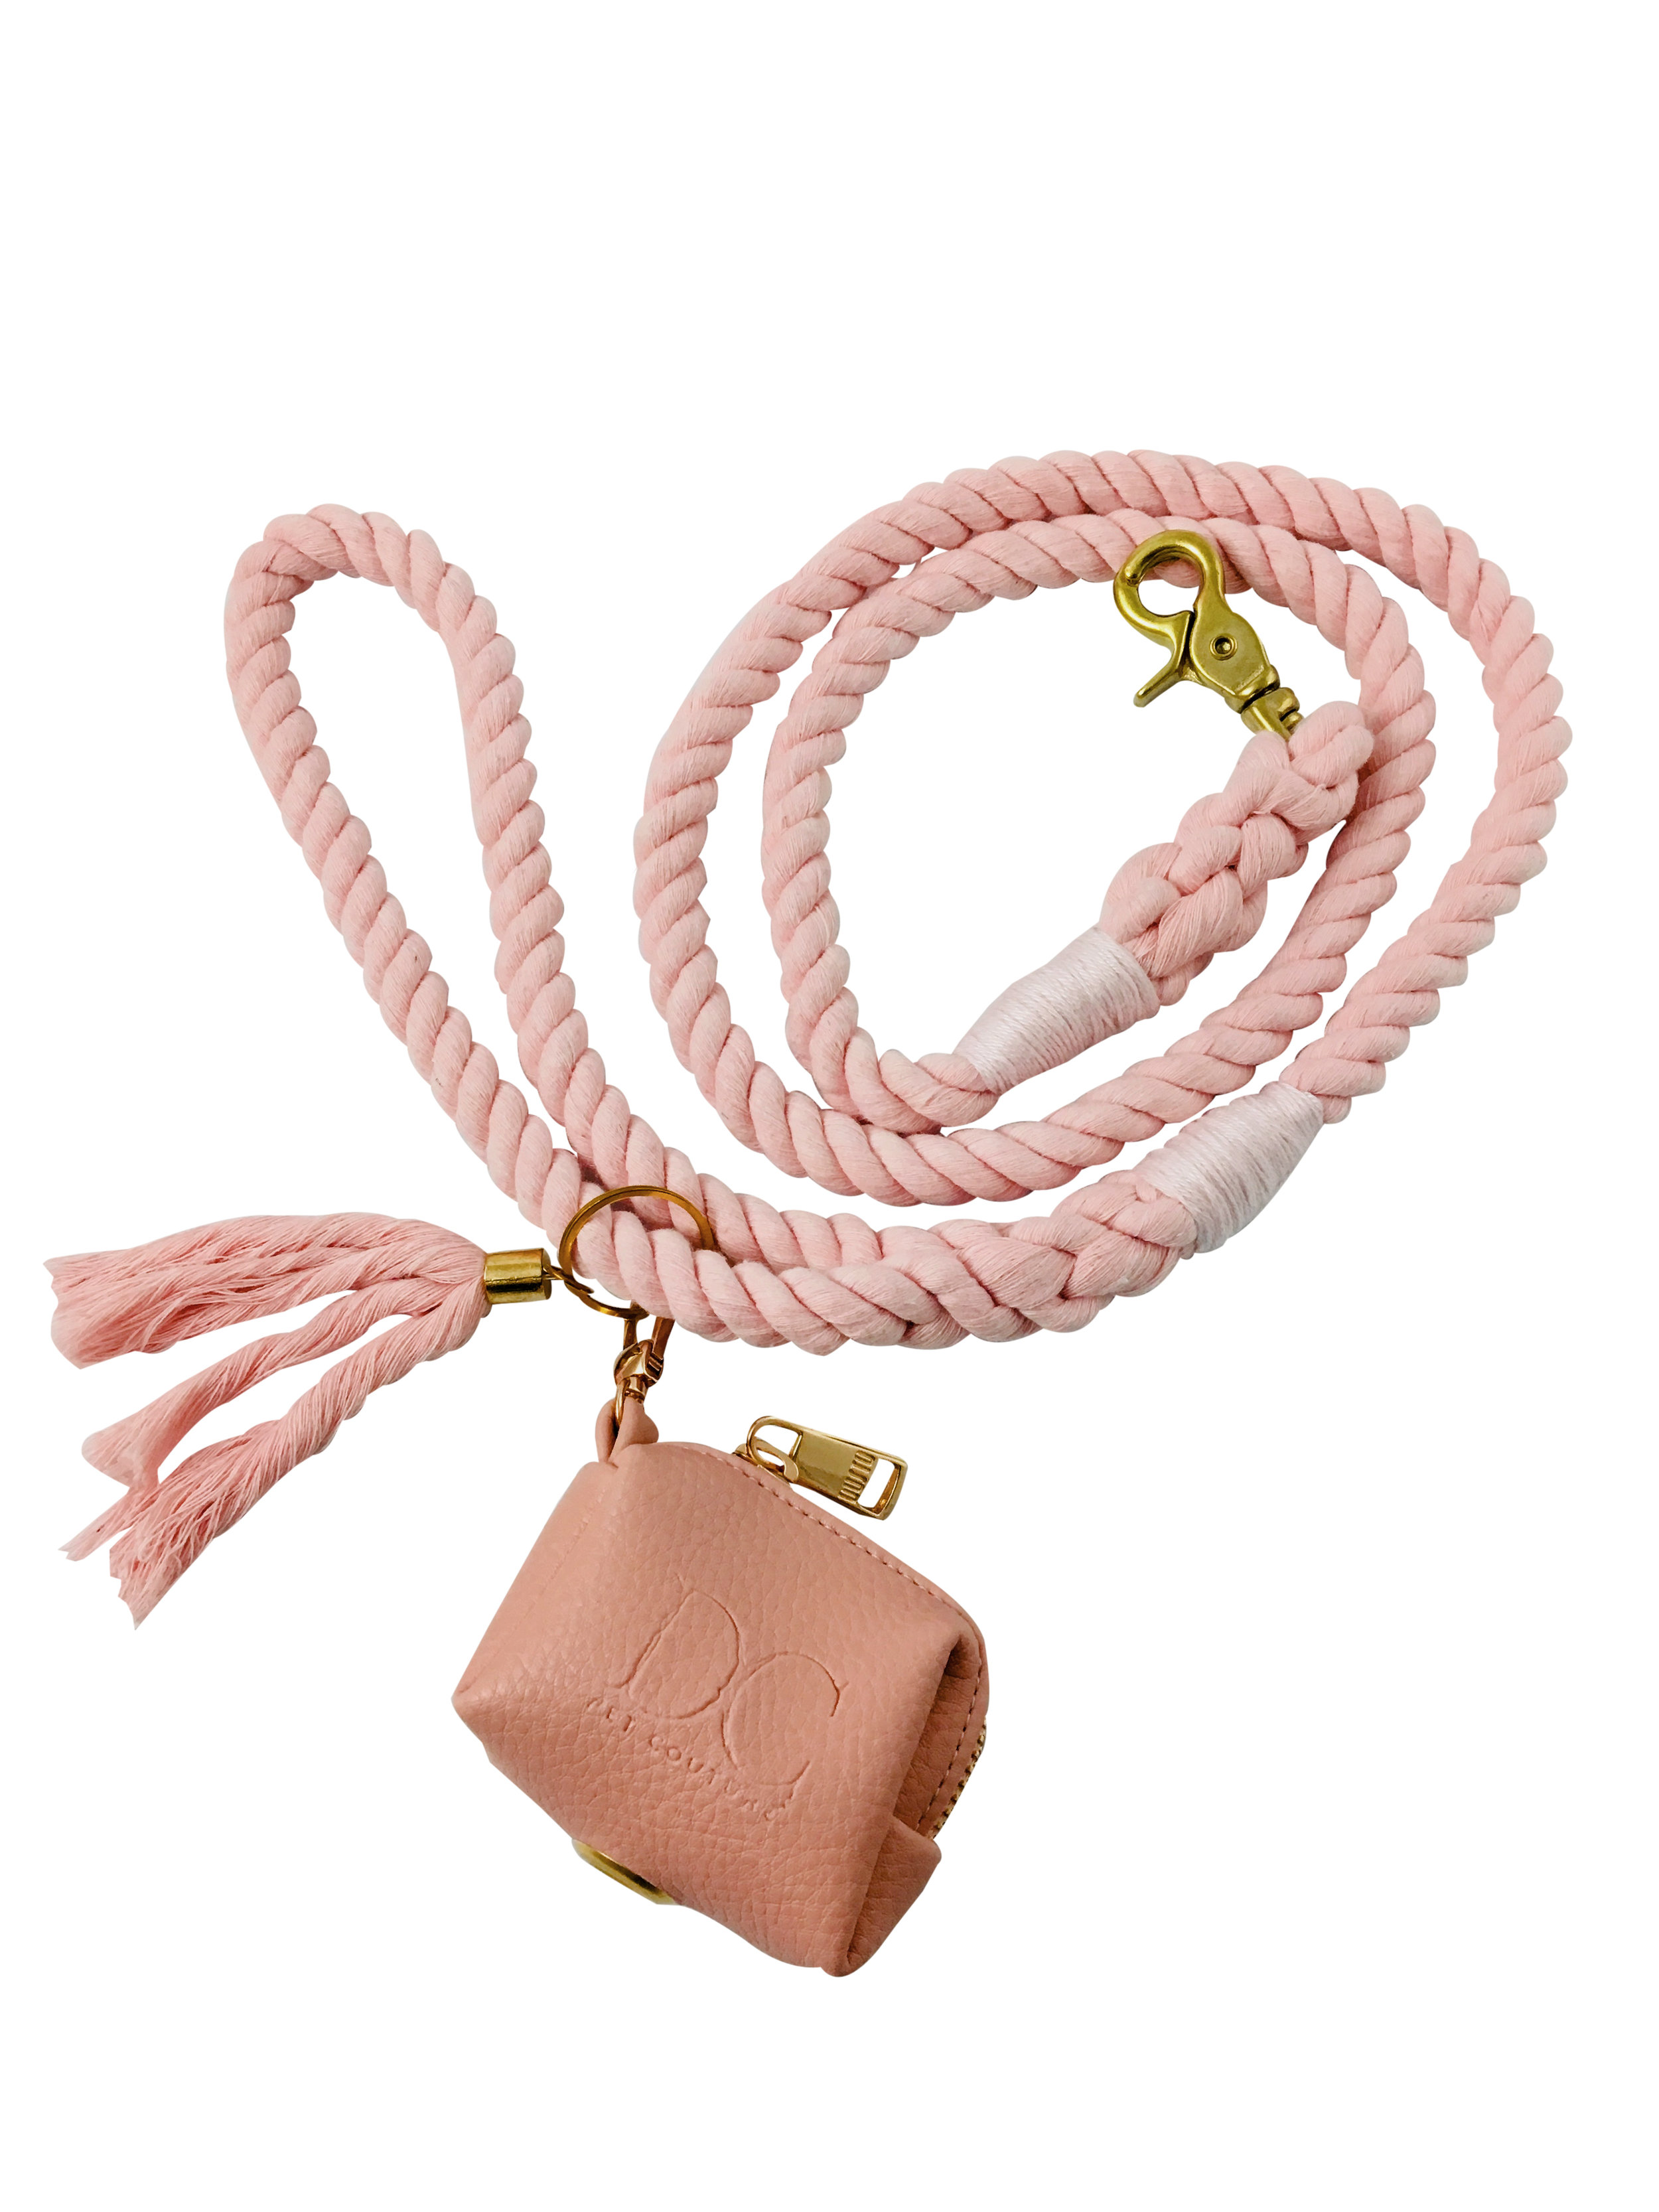 Lead with Poop Purse, Rose Quartz Pink - With decorative tassel and poop purse